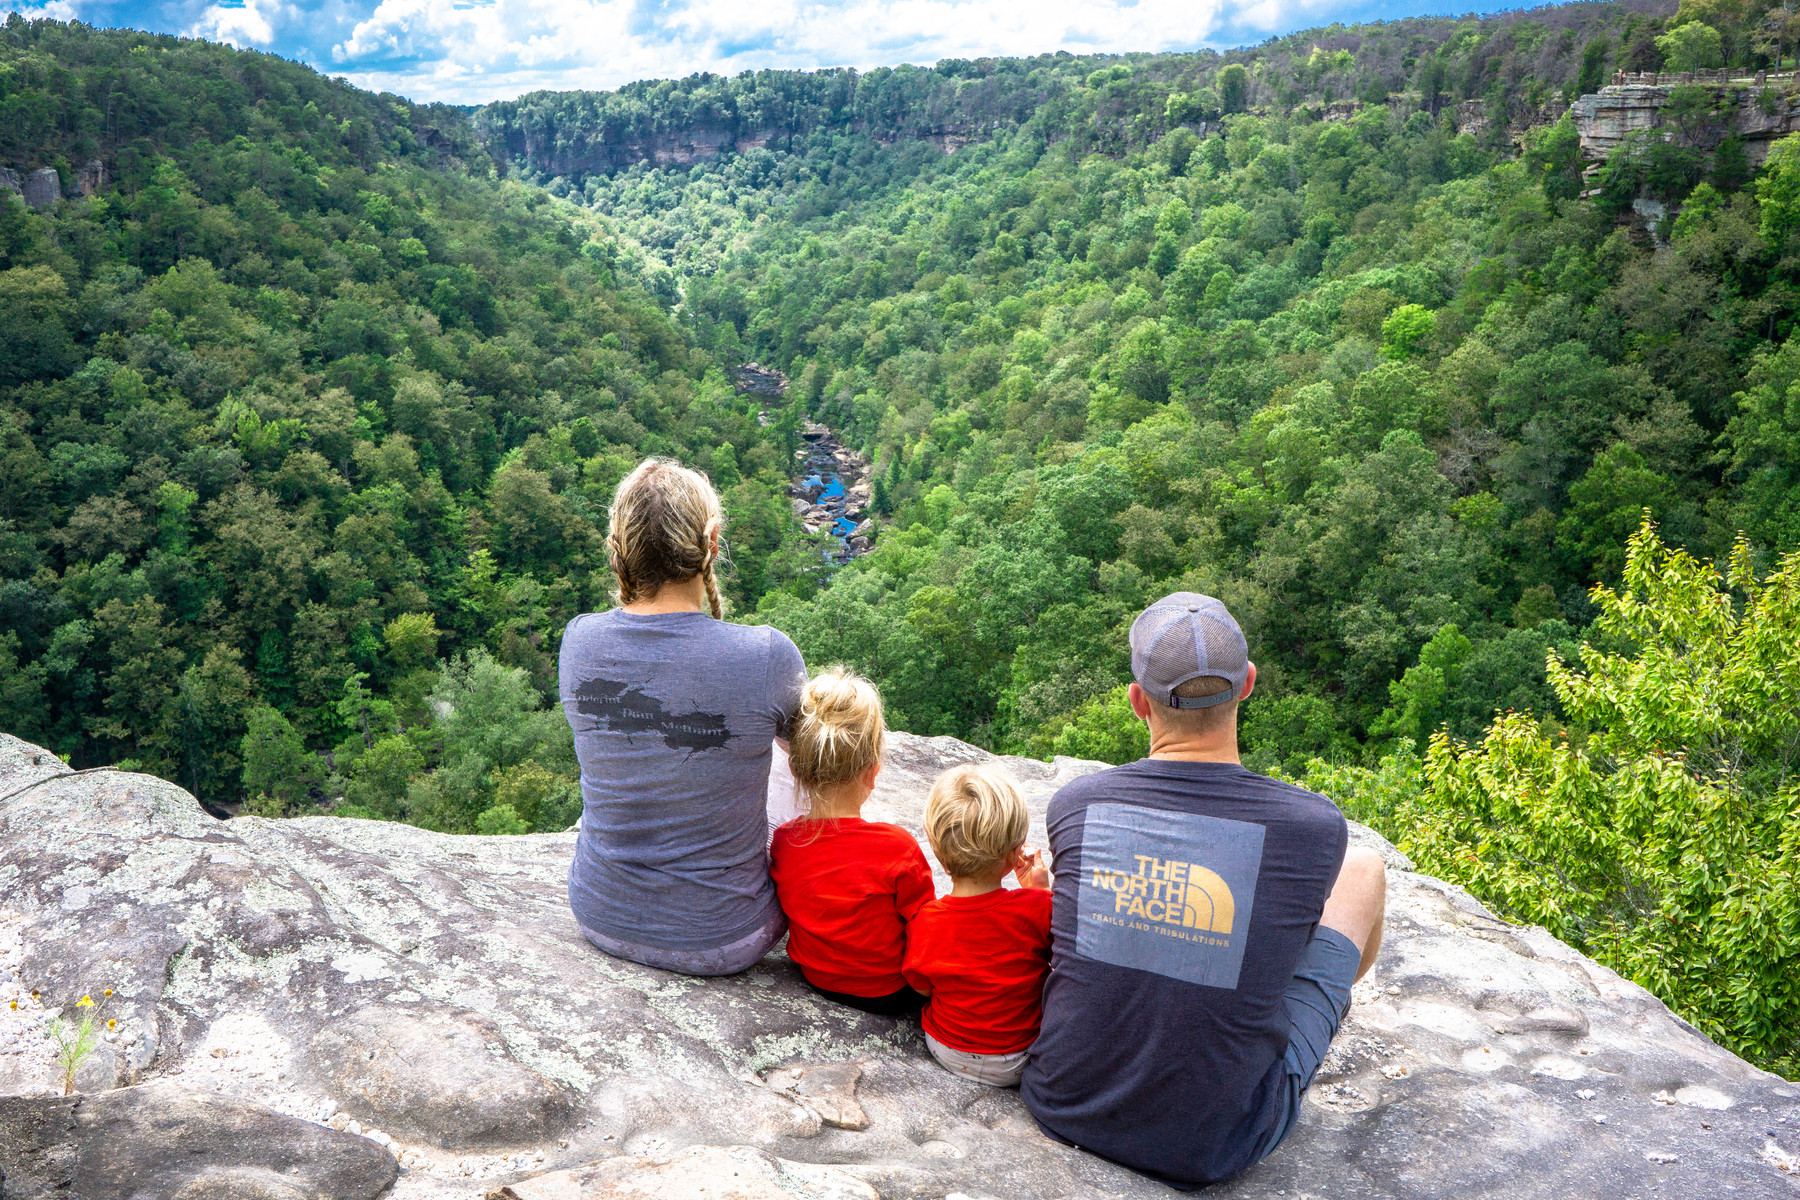 The four nomads enjoying the views at Little River Canyon in Fort Payne, Alabama